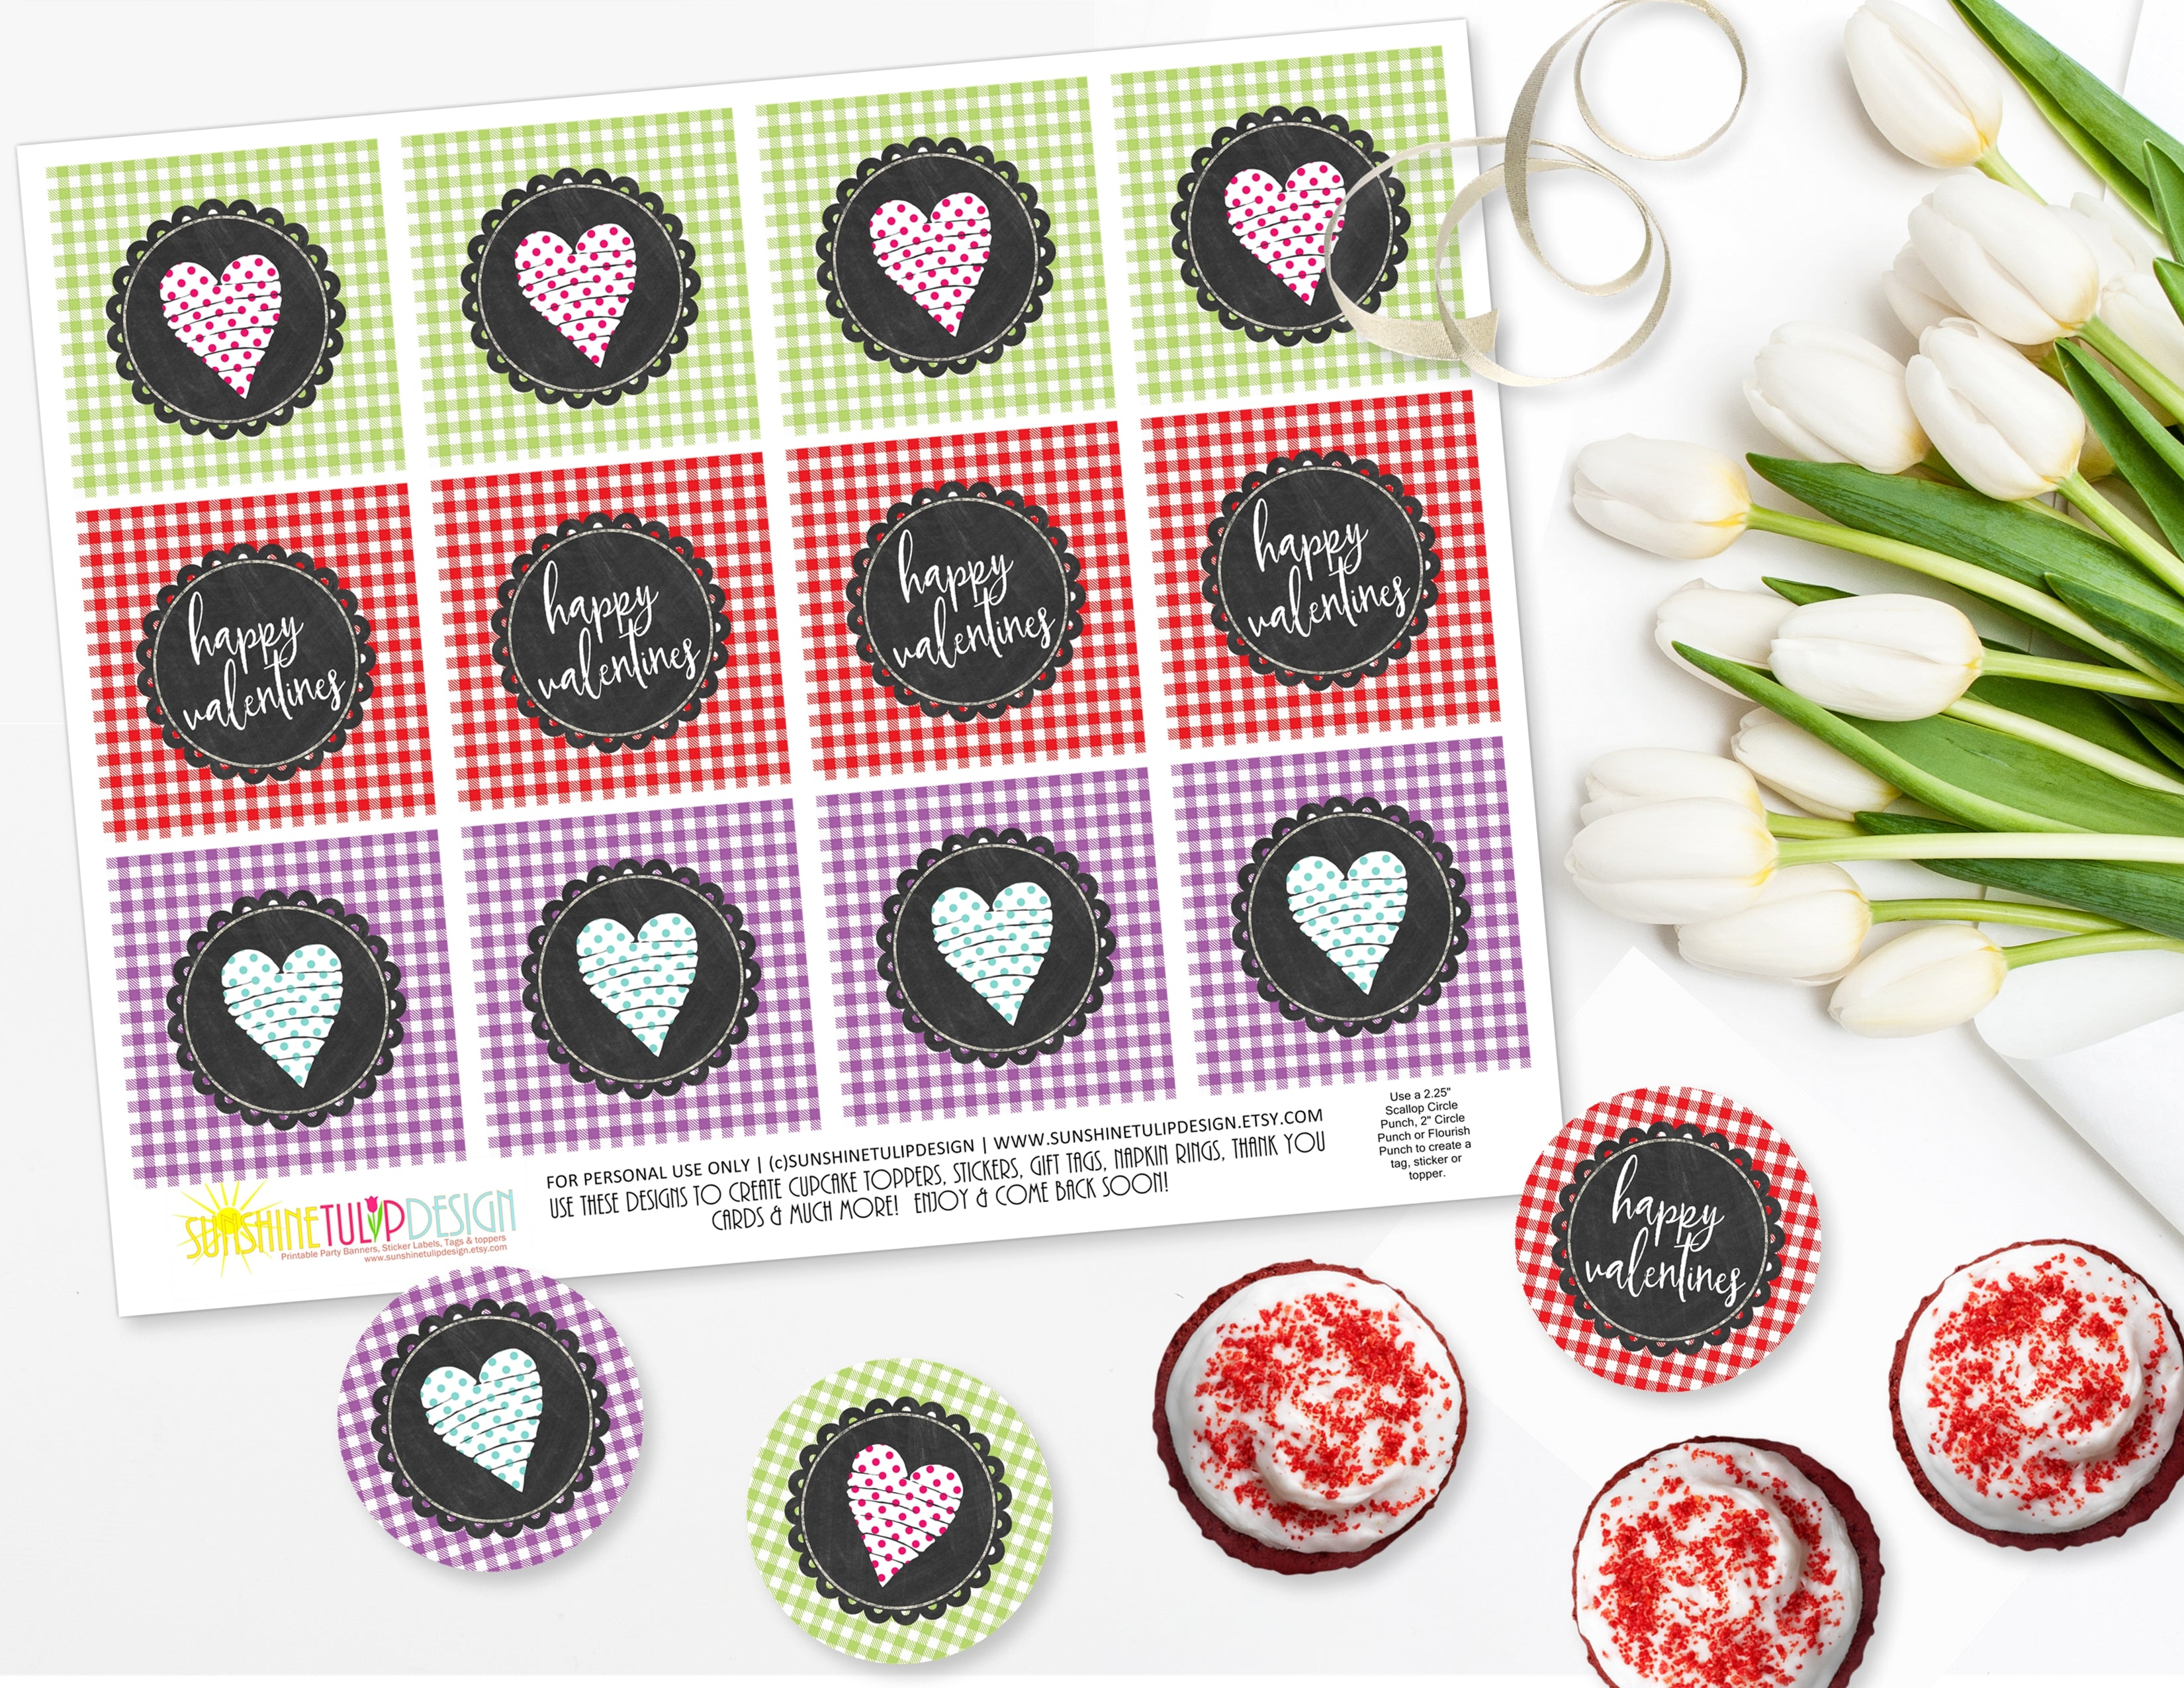 photo relating to Printable Valentines Decorations named Printable Valentines Social gathering Choice Decor, Printable Valentines Working day Bash Decorations, Prompt Obtain Valentines Get together by way of SUNSHINETULIPDESIGN